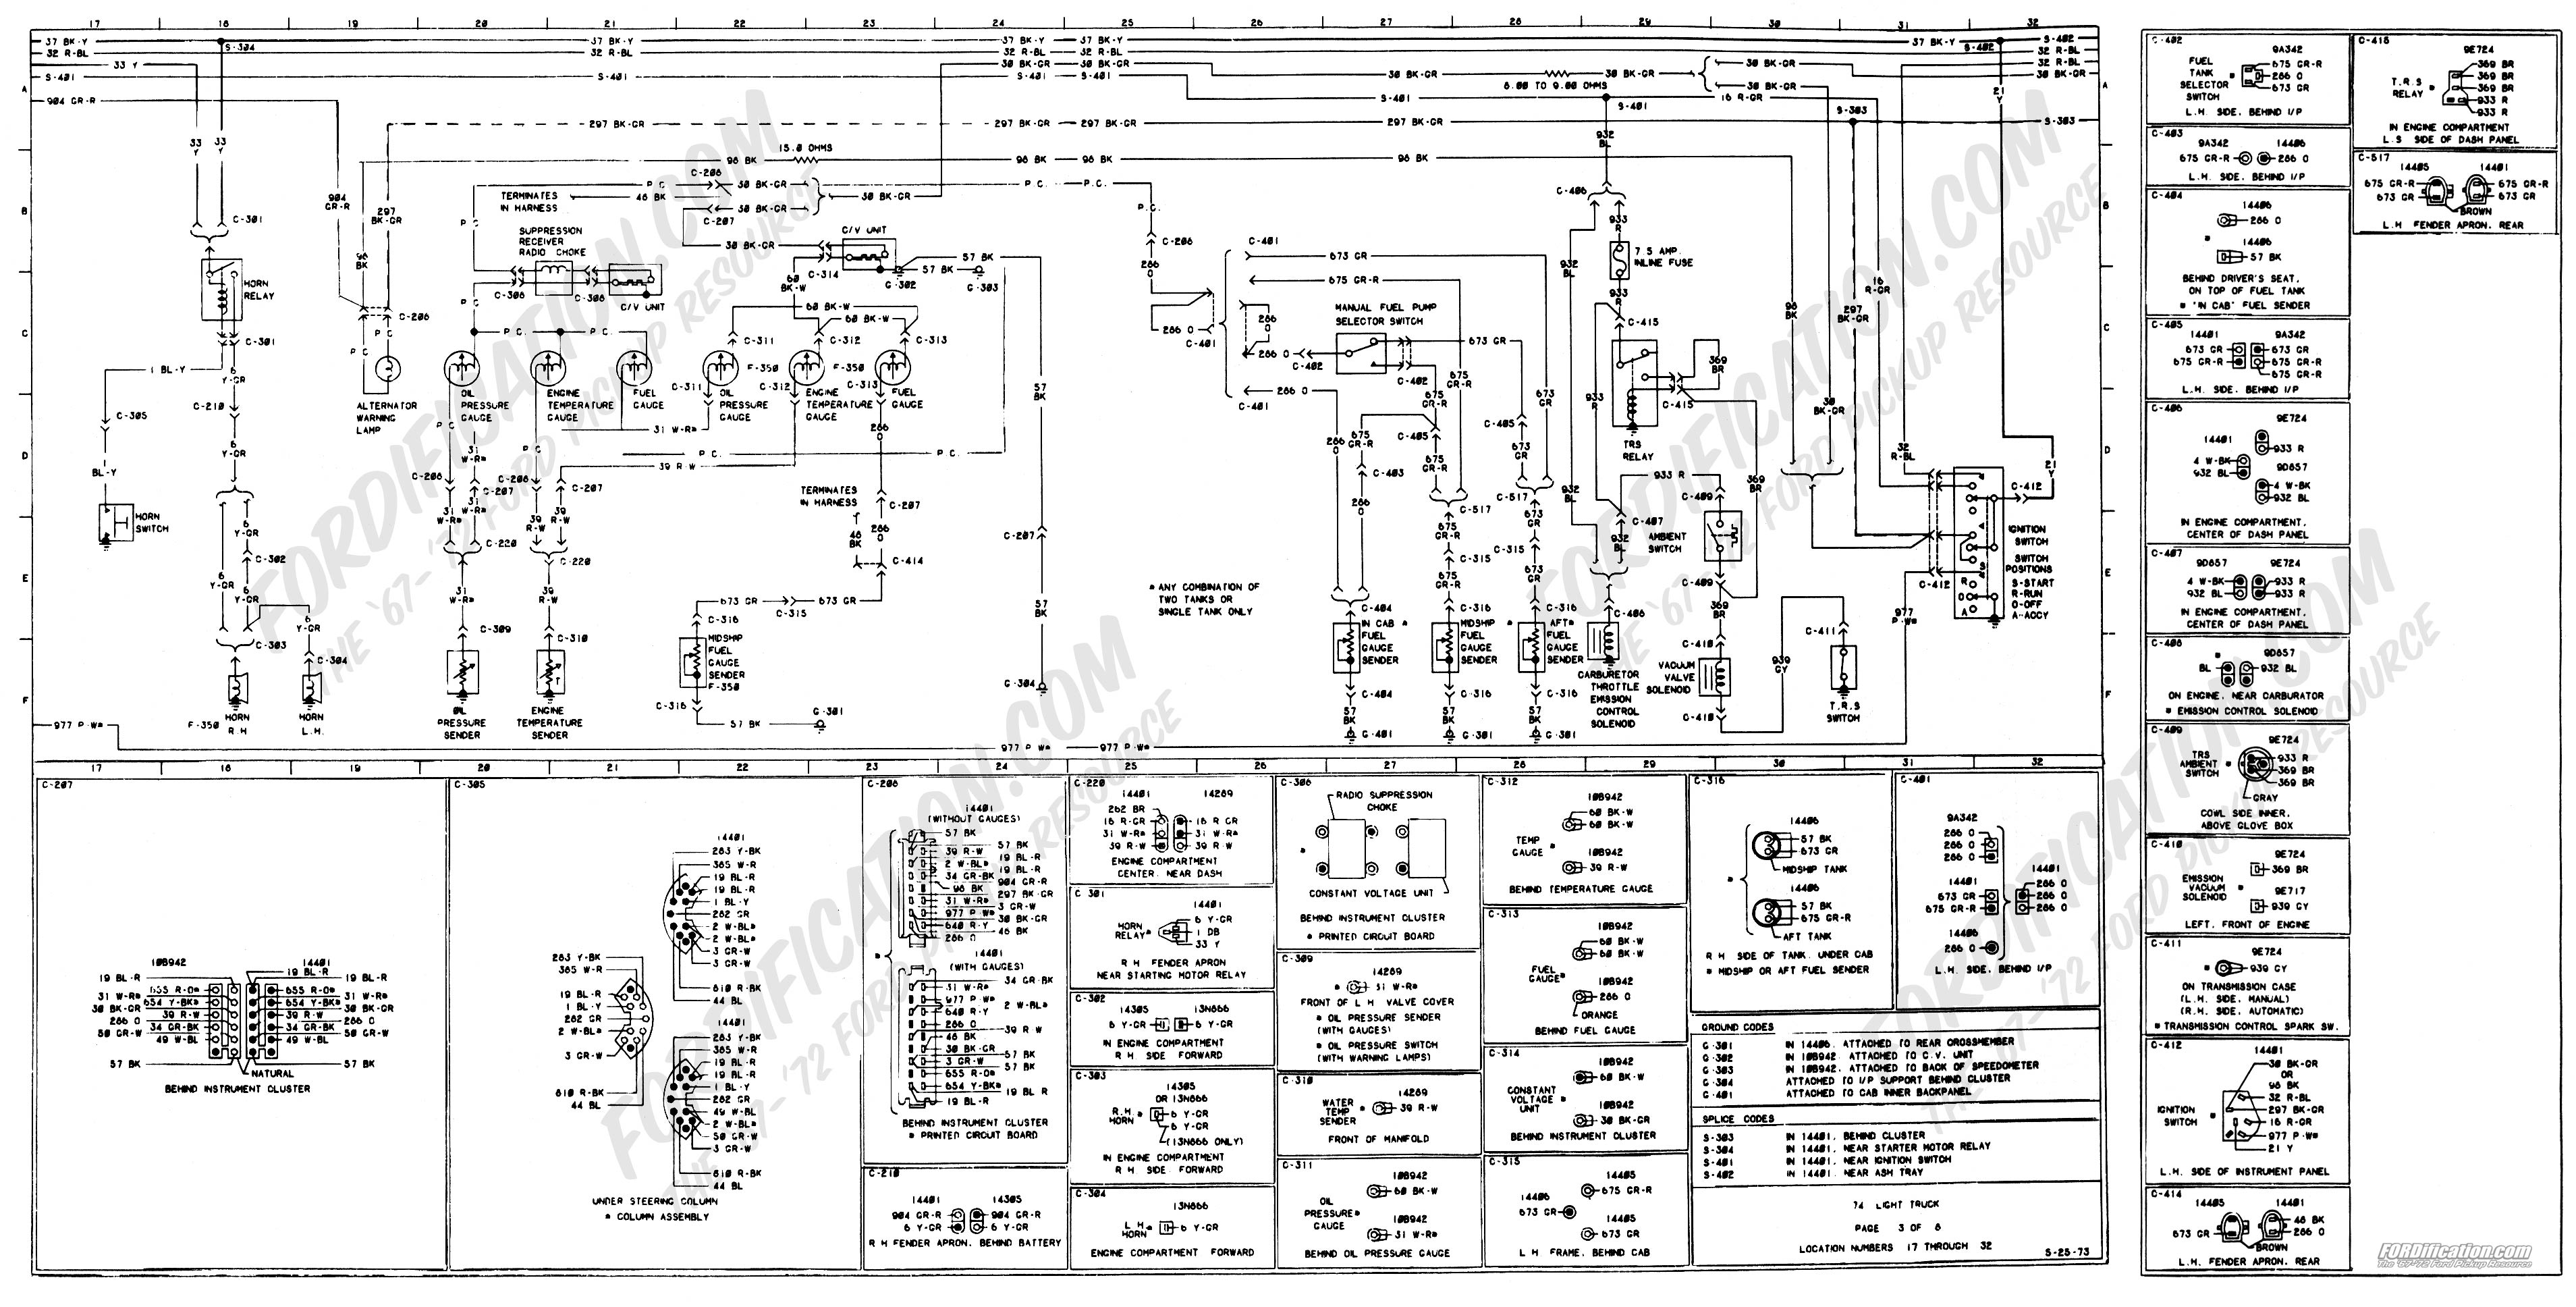 wiring_74master_3of8 1973 1979 ford truck wiring diagrams & schematics fordification net electrical wiring diagram ford courier at reclaimingppi.co